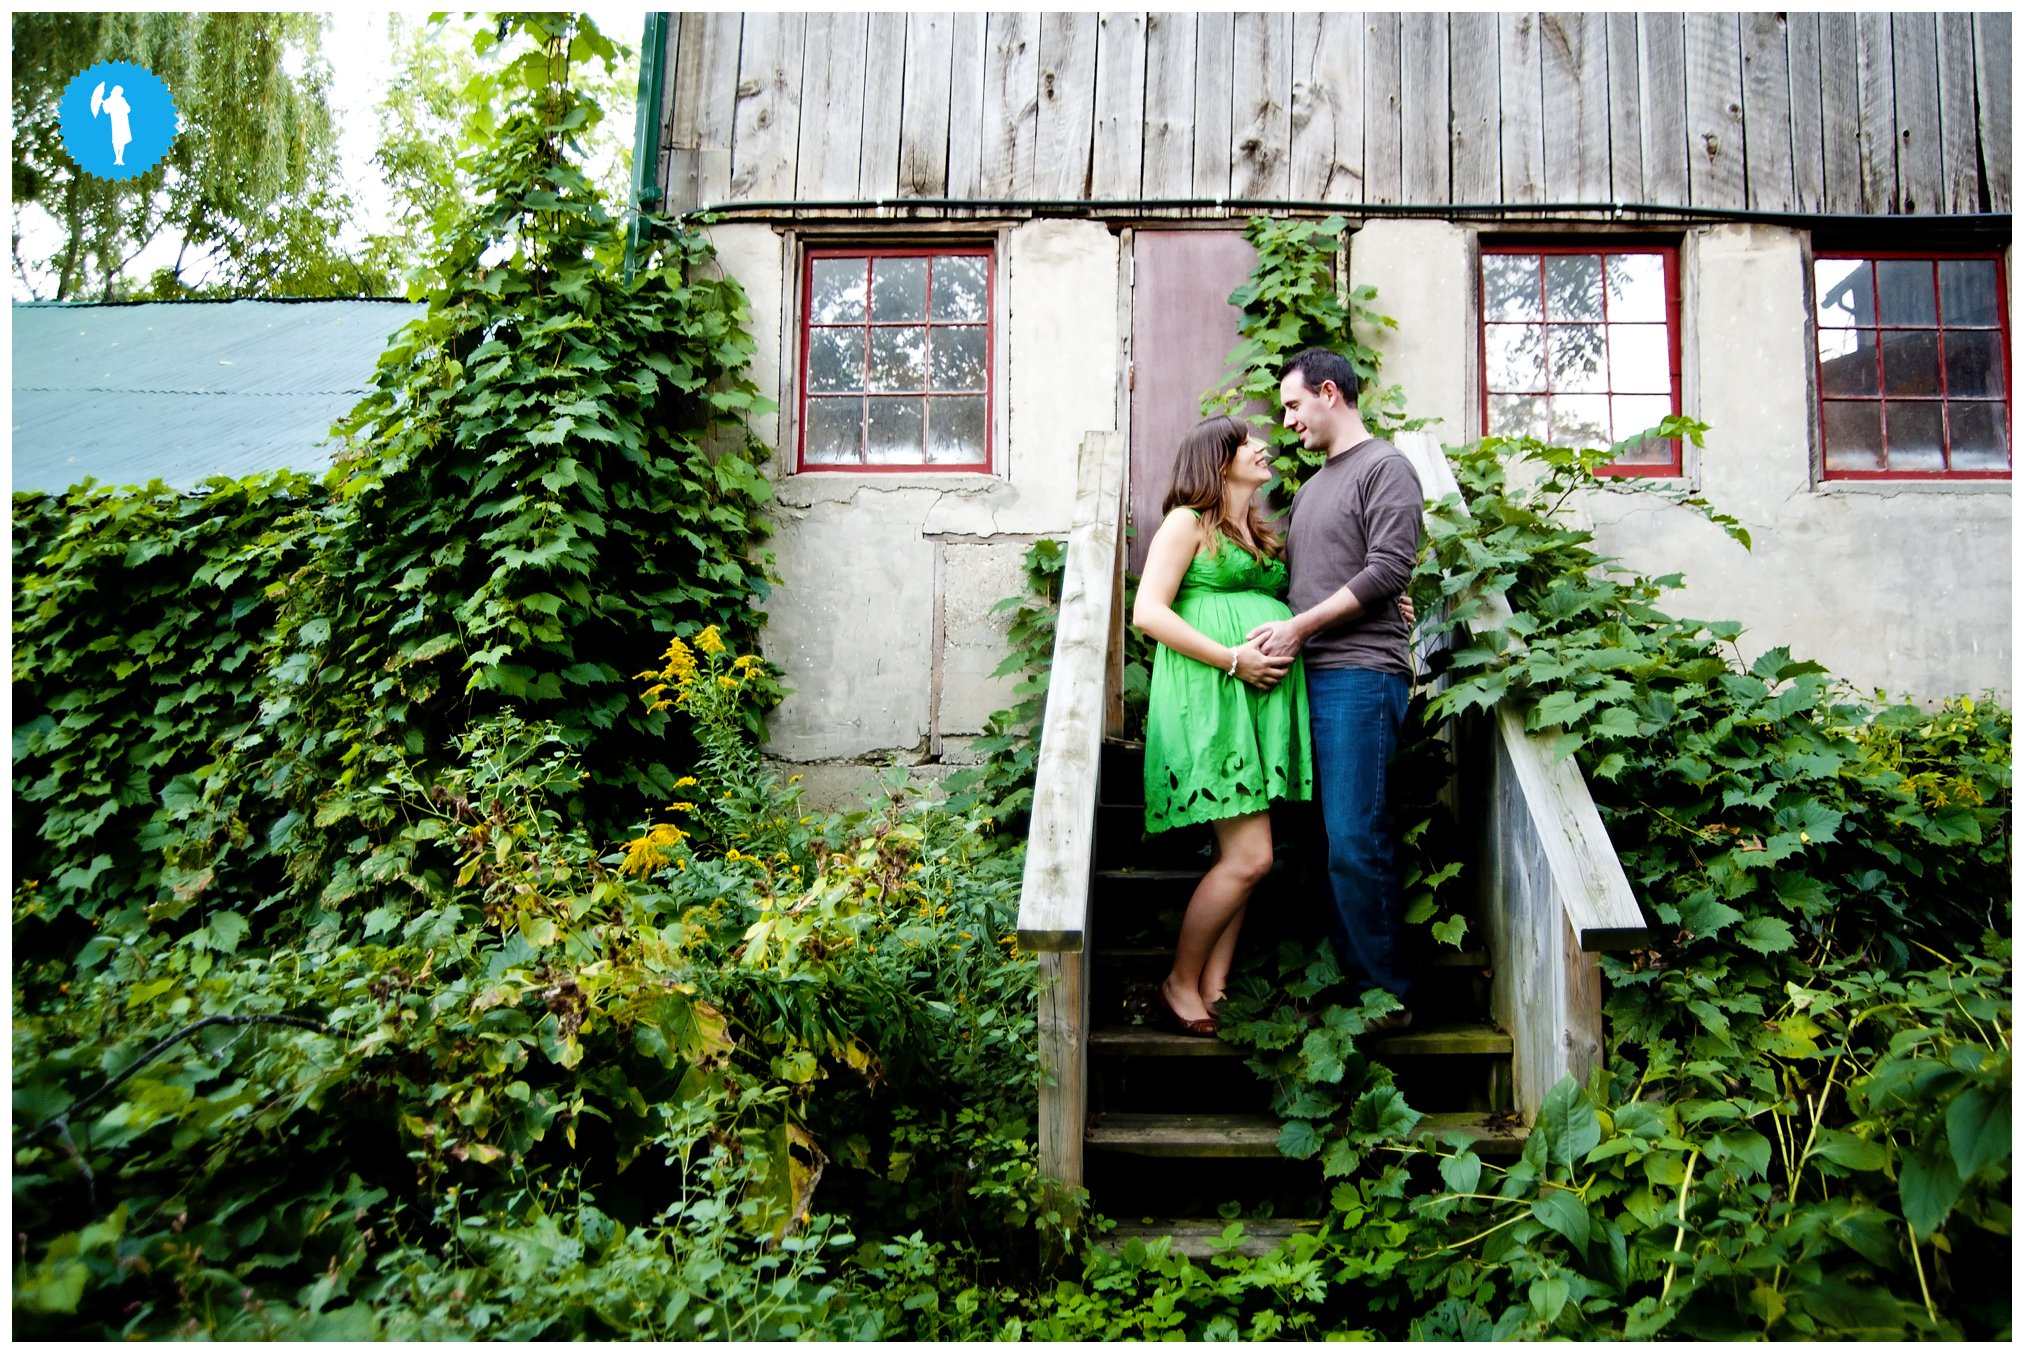 Maternity photography in Kitchener at Steckle Heritage Farm.